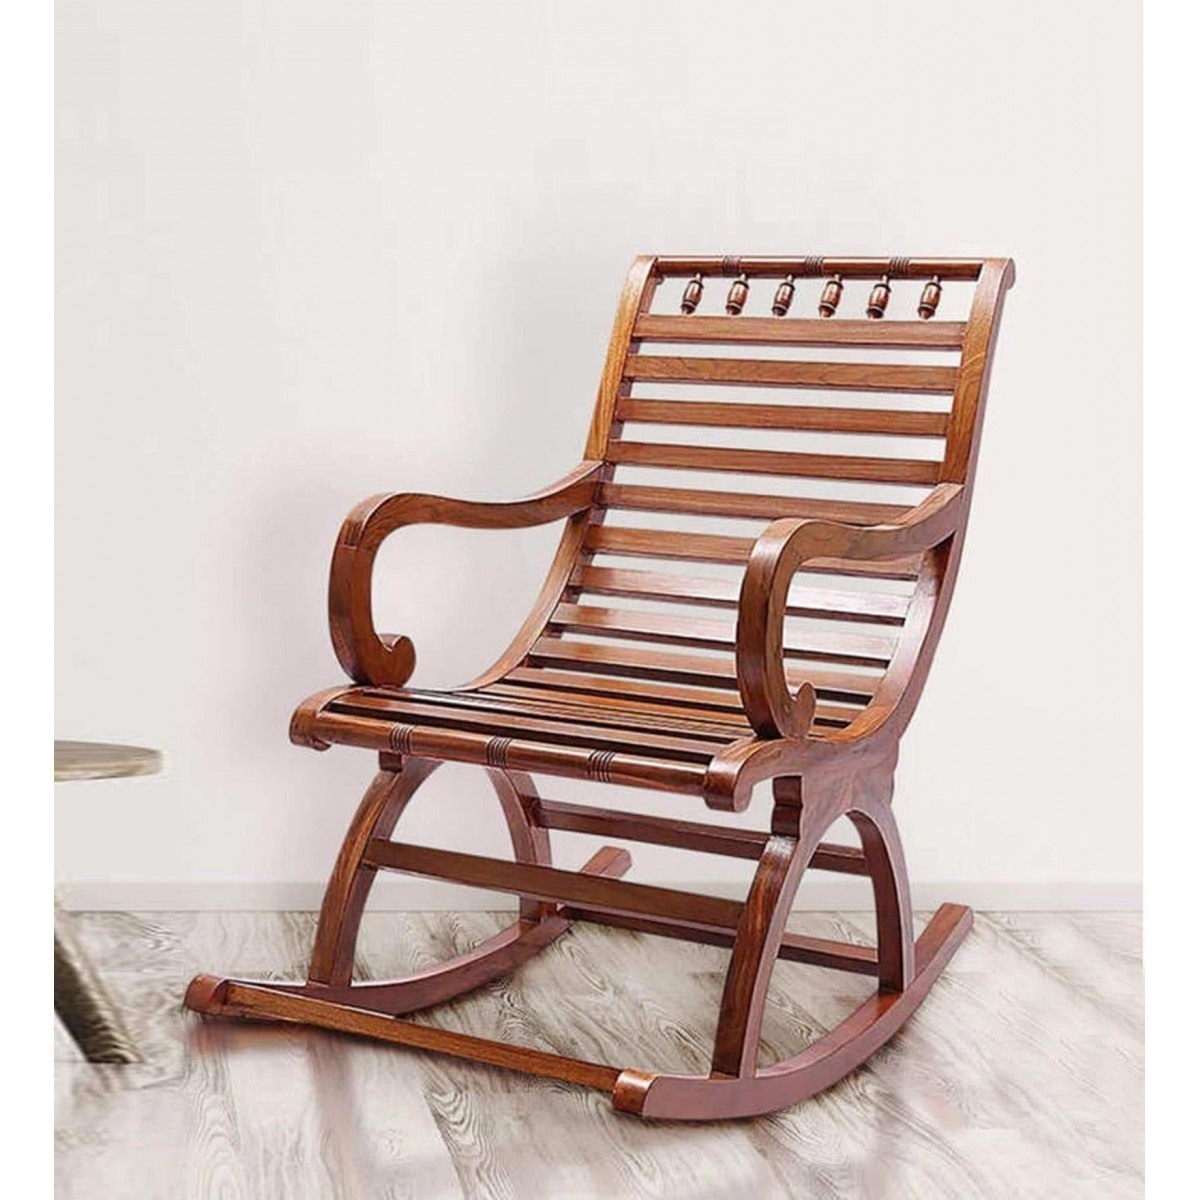 Rocking Chairs For Adults Pertaining To Popular Rocking Chairs Online Shop Wooden Rocking Chair At Here !! (View 15 of 15)